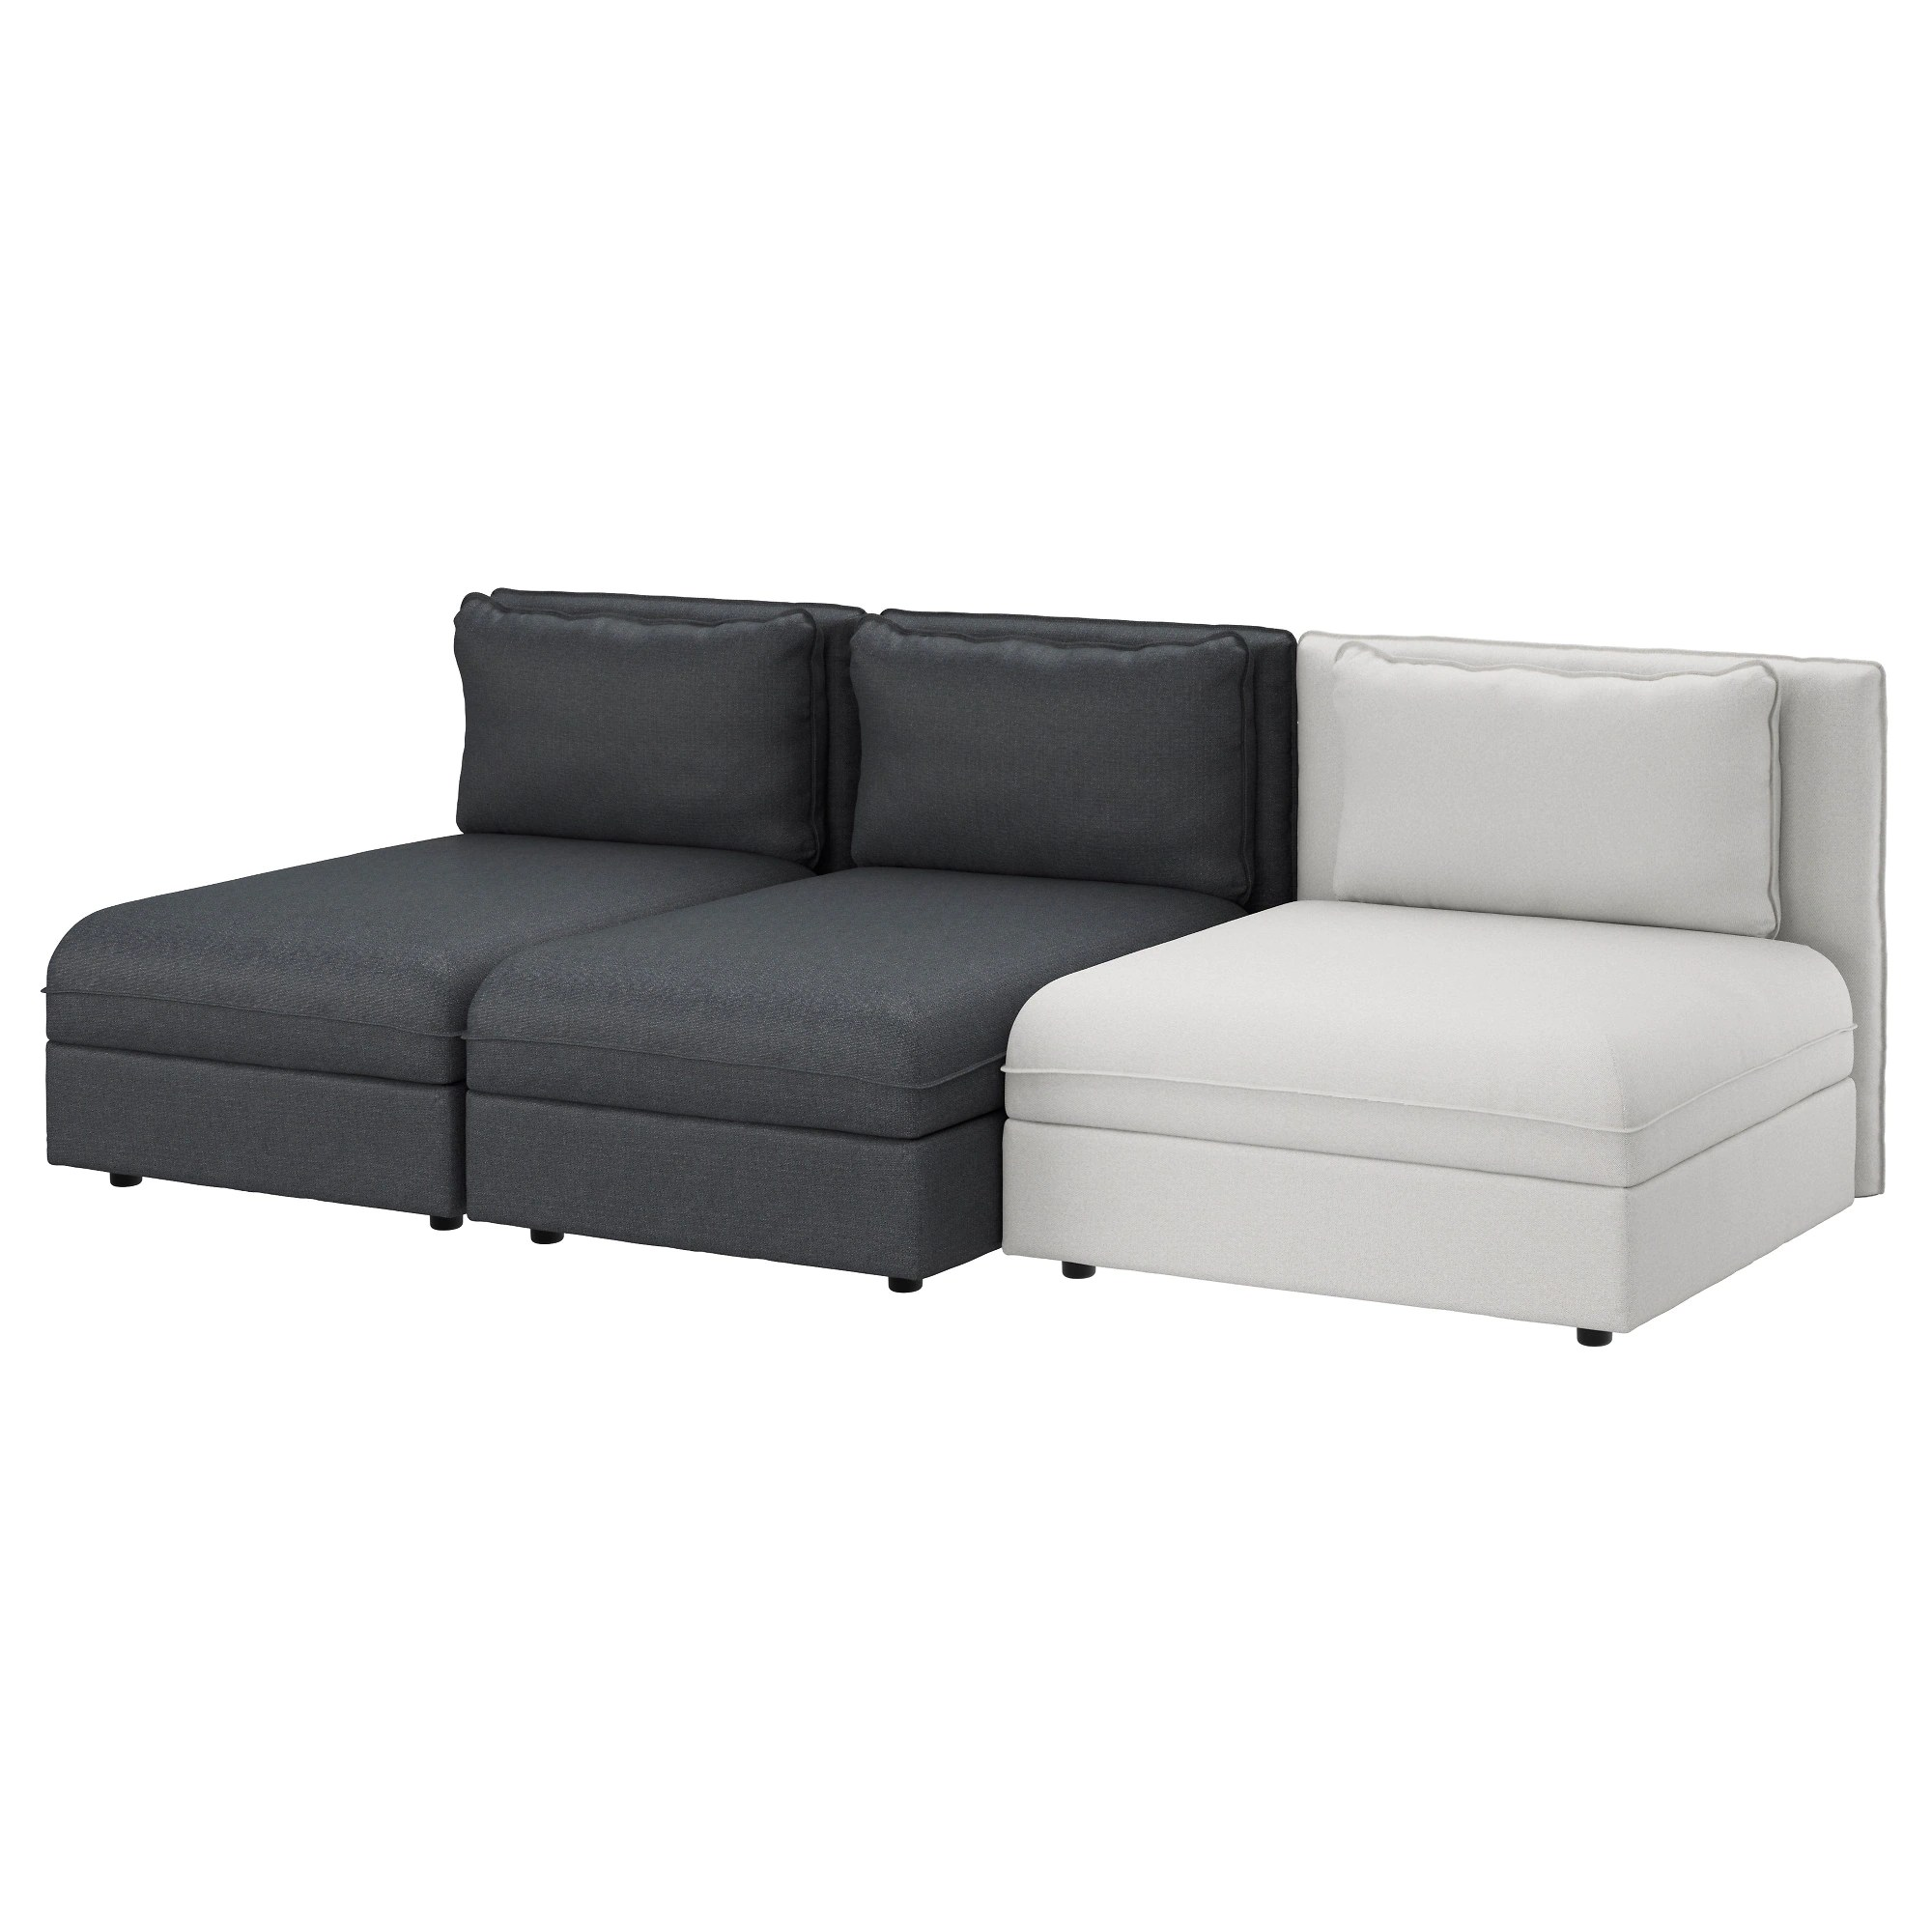 Ikea Sofa Vallentuna Erfahrung Vallentuna Sofa Hillared Dark Gray Orrsta Light Gray